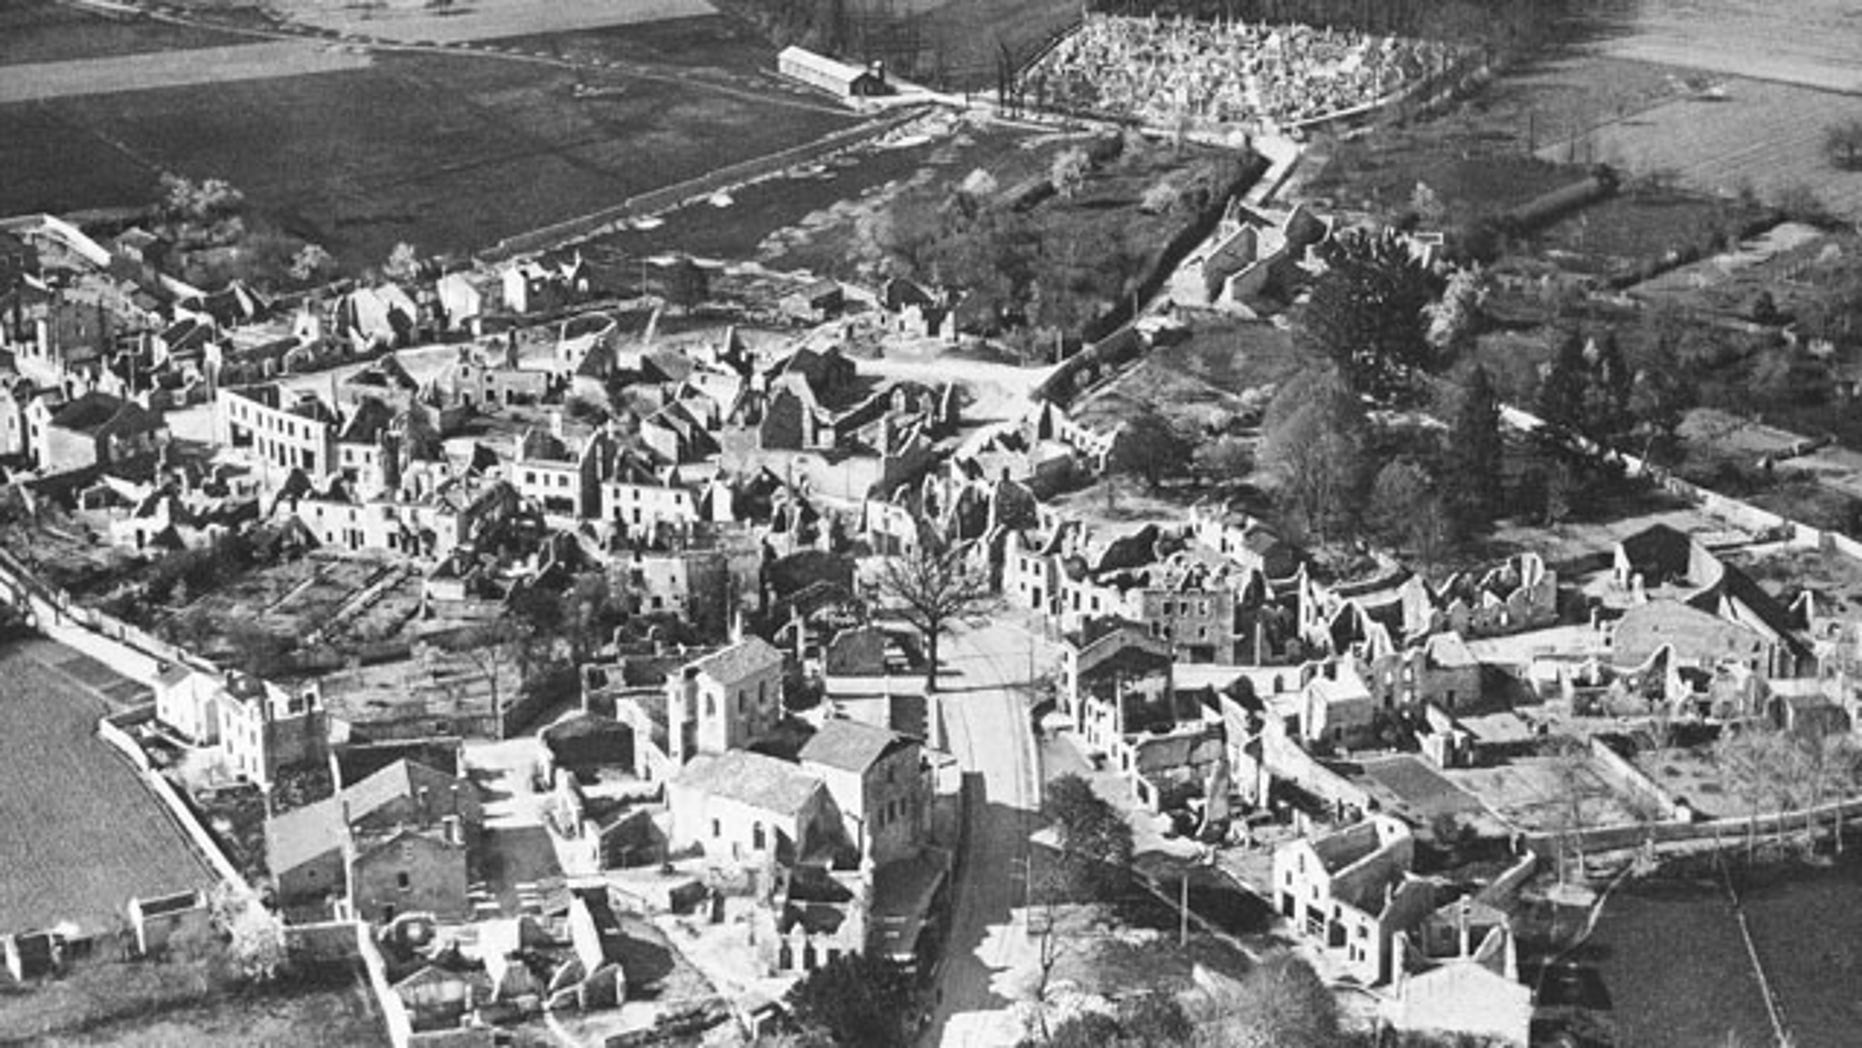 FILE - In this Jan. 1, 1953 b/w file picture, an aerial view of the destroyed Oradour-sur-Glane, in France is visible. In total, 642 men, women and children were killed here in reprisal for the French Resistance's kidnapping of a German soldier. (AP Photo,File)